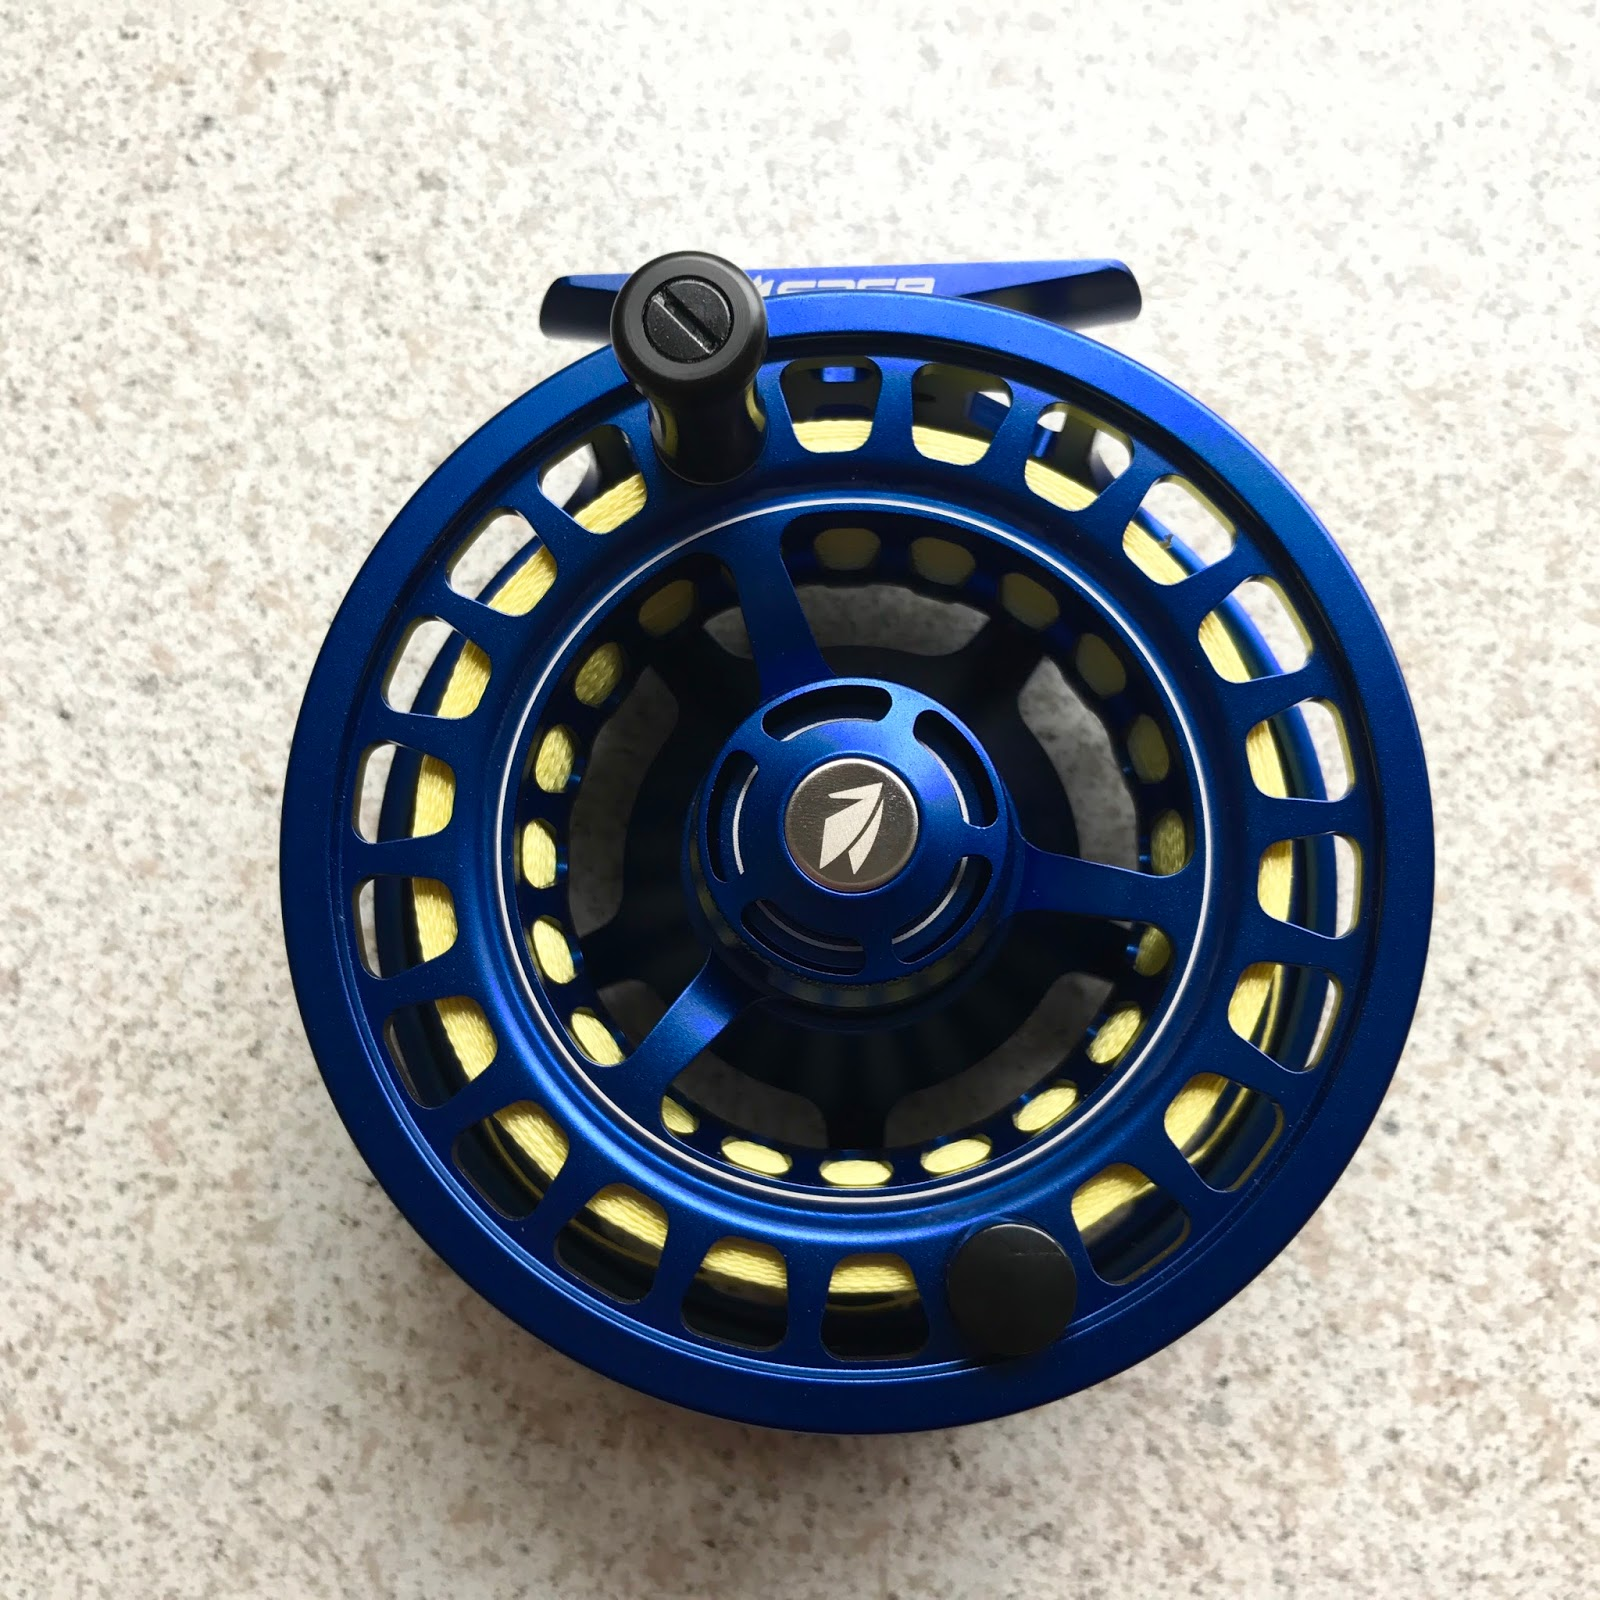 Sage 6280 Reel Review